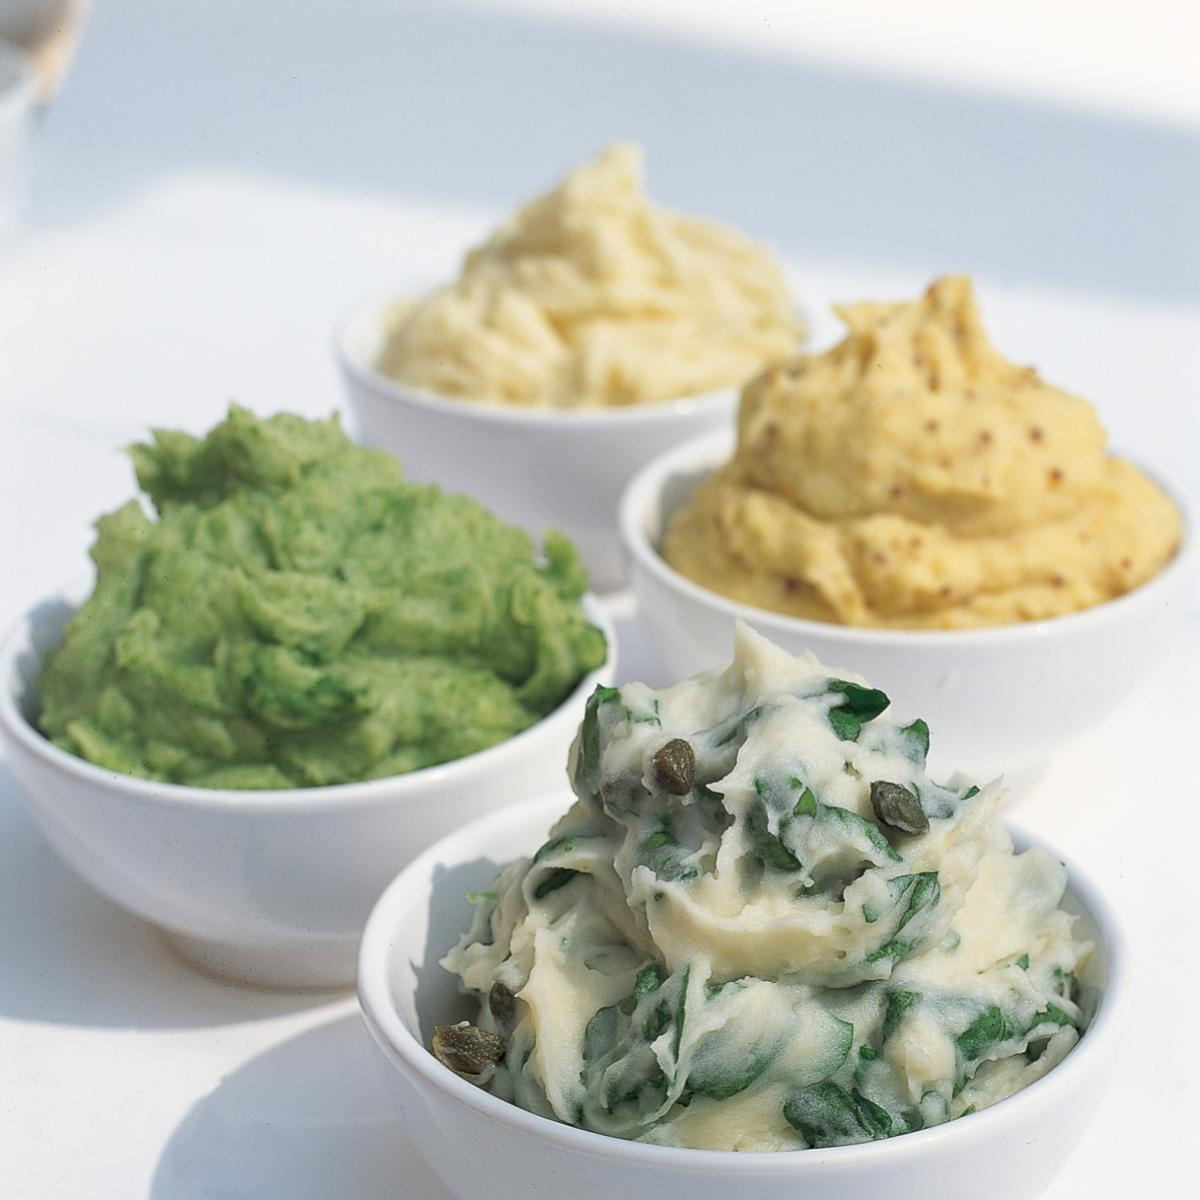 A picture of Delia's Mashed Potato with Three Mustards recipe